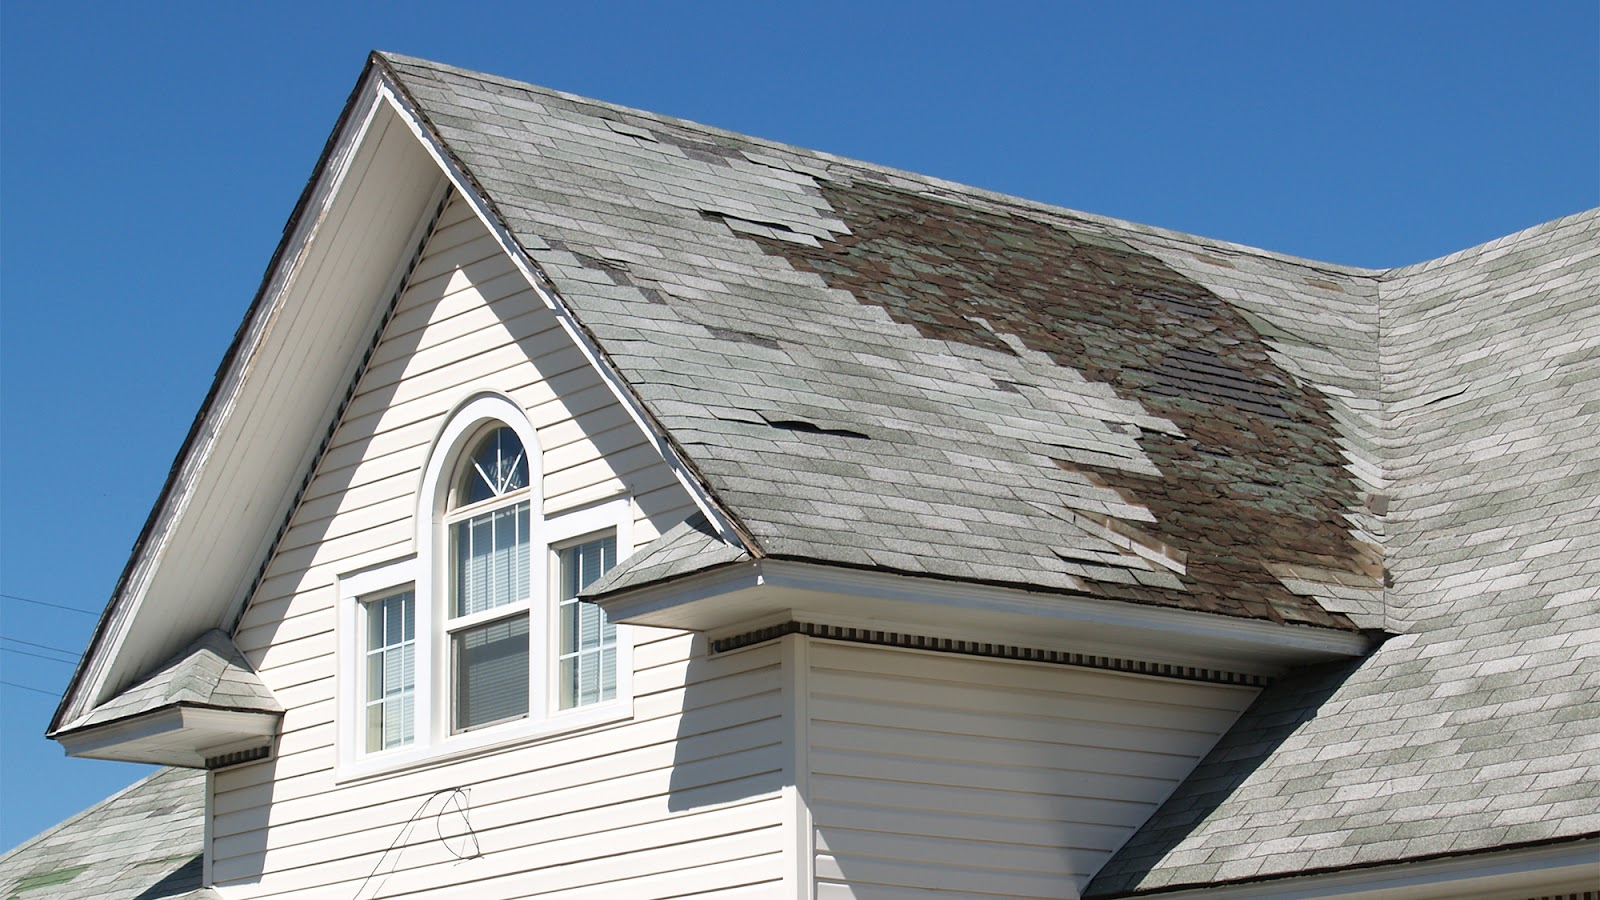 Should You Buy a House With Roof Damage? | realtor.com®